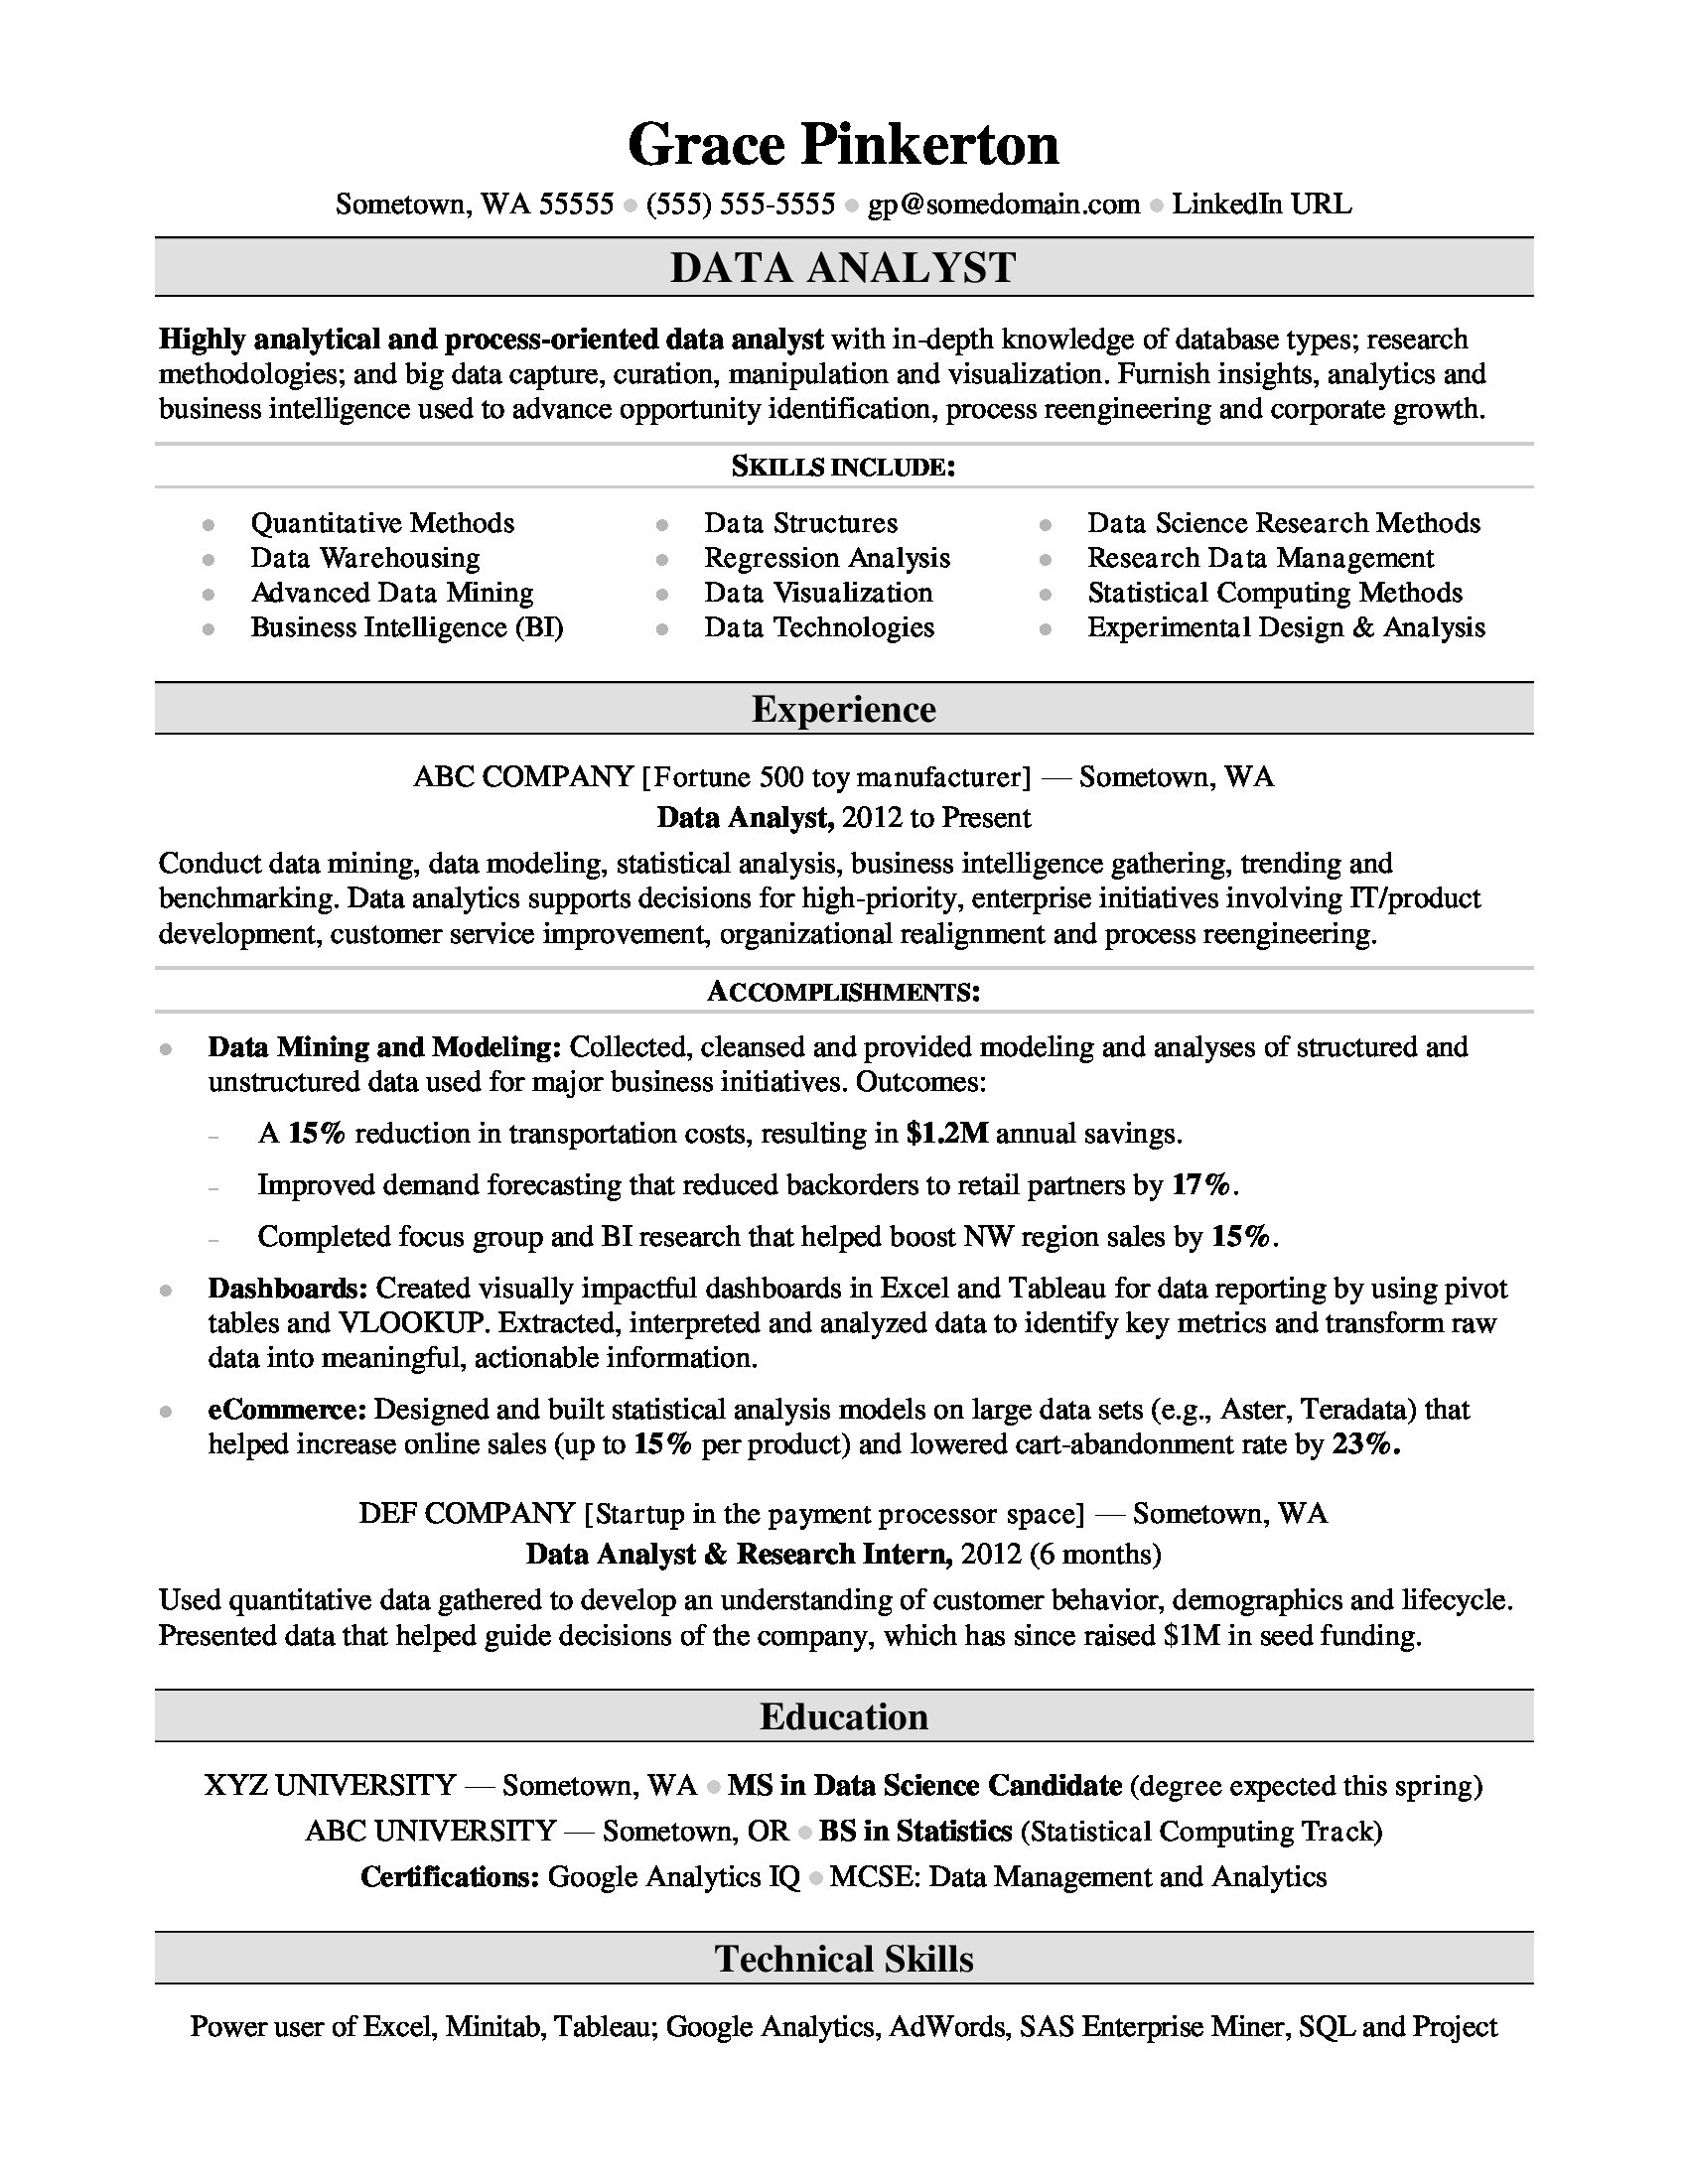 Data Analyst Resume Sample  Data Management Resume